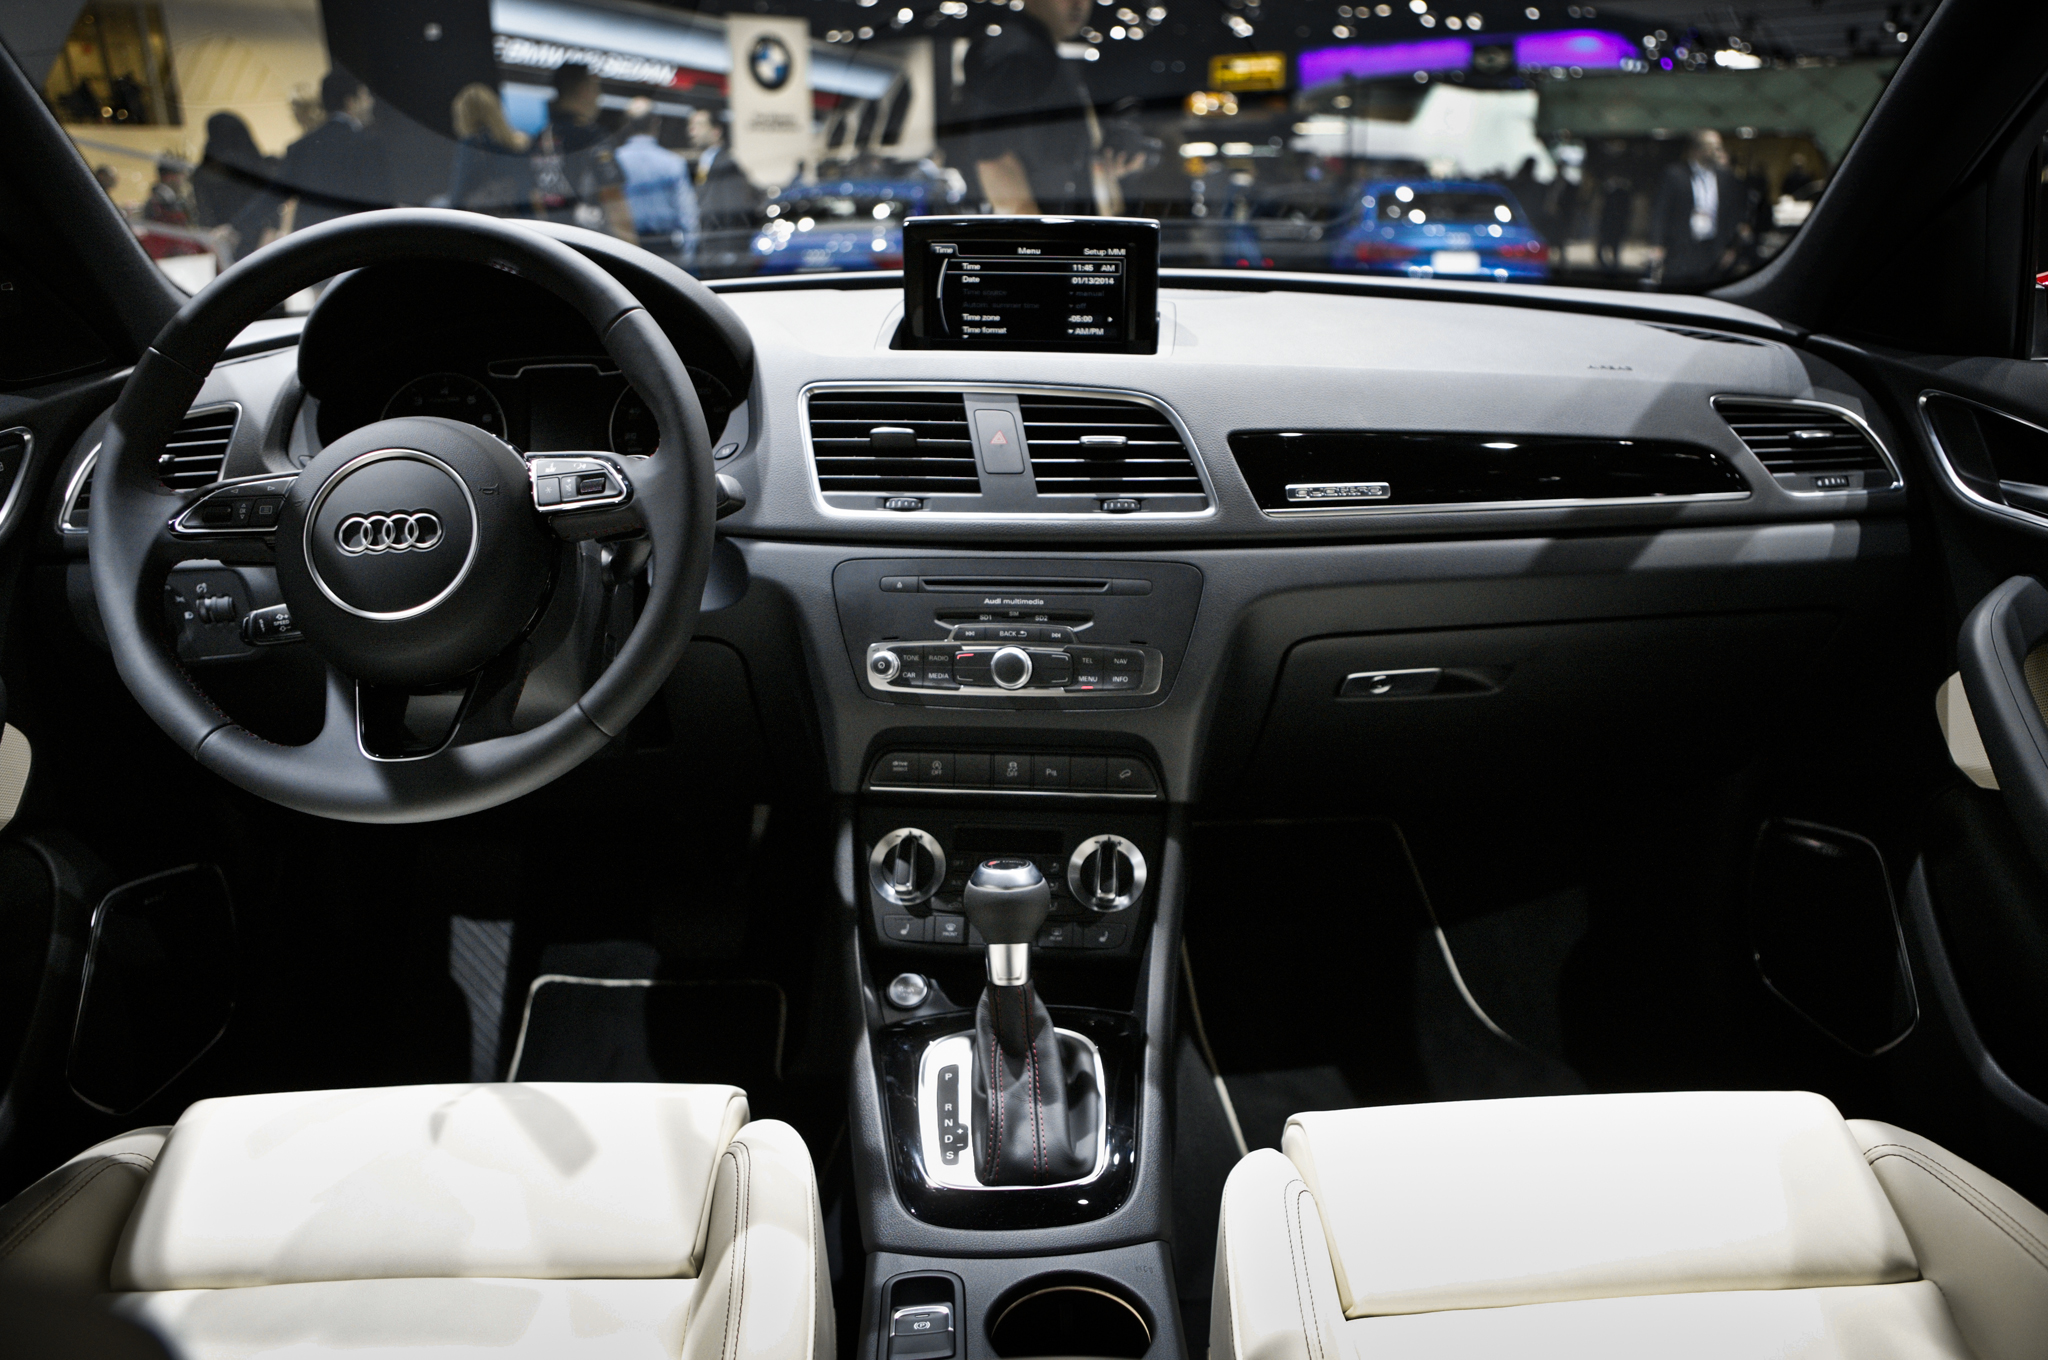 2015 Audi Q3 Dashboard Interior View (View 18 of 21)